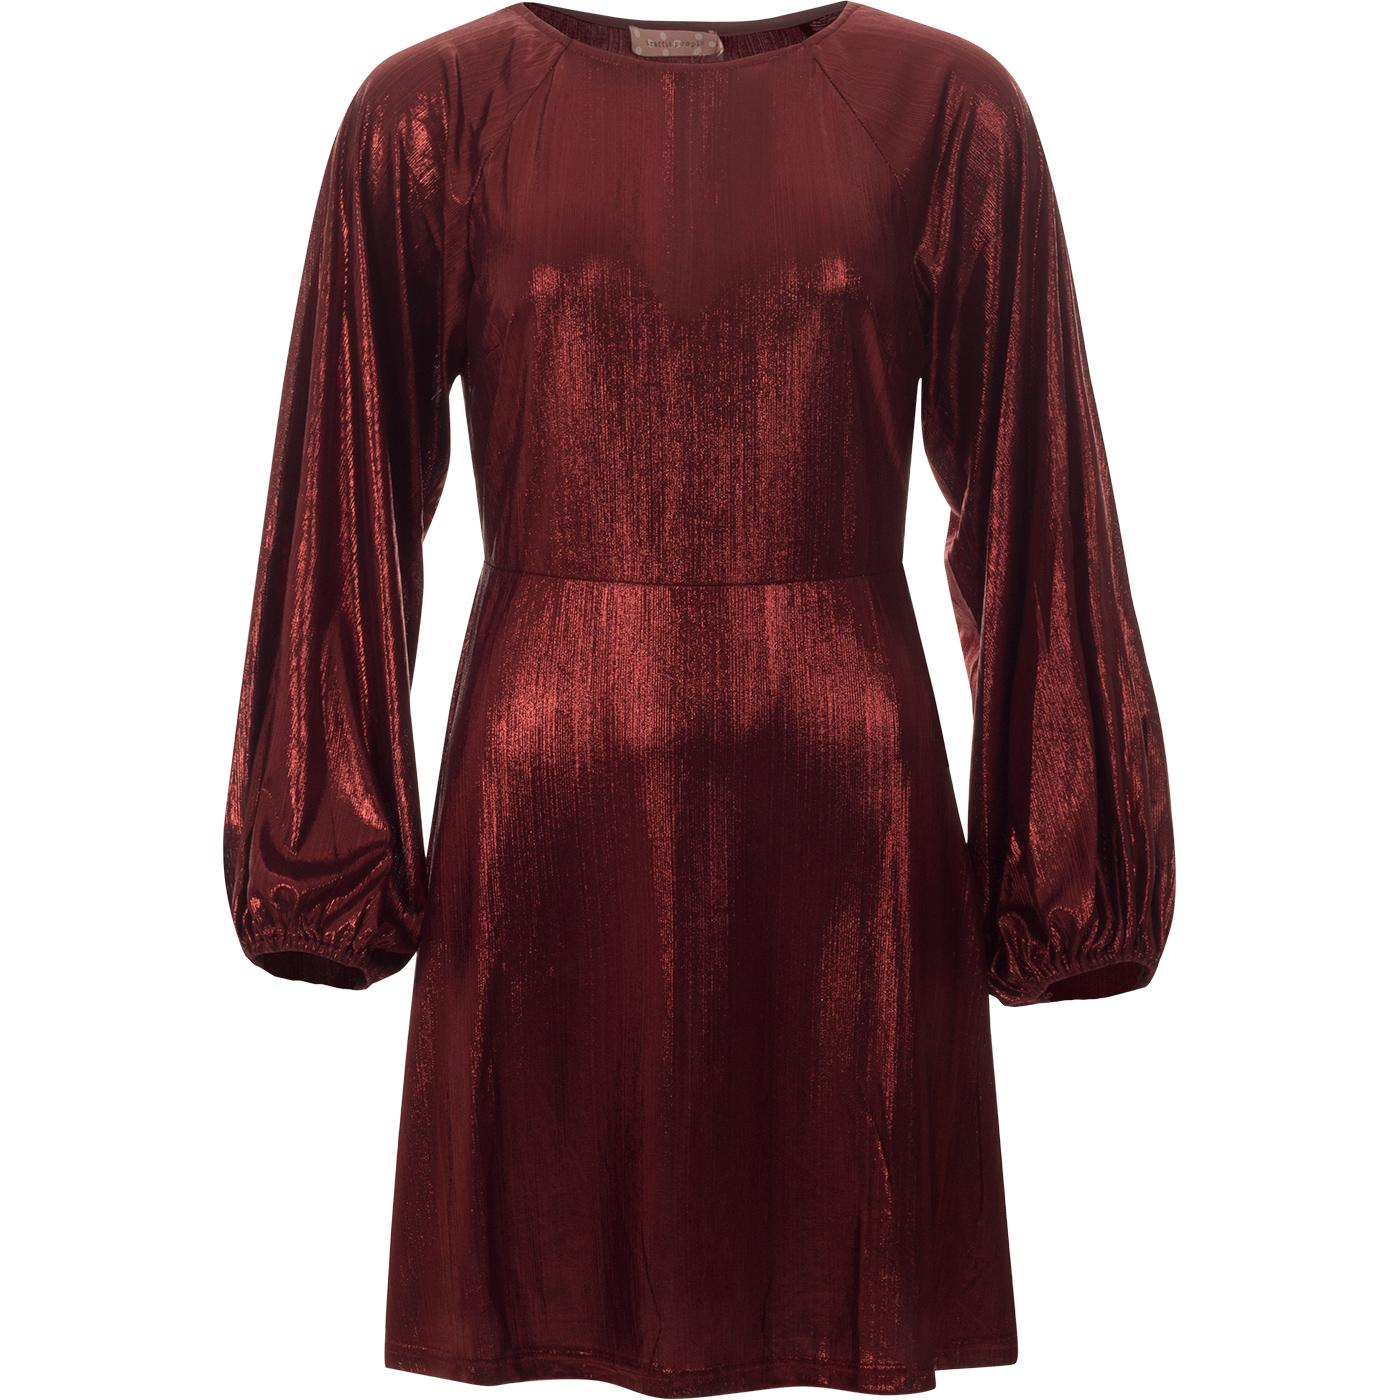 Audrey TRAFFIC PEOPLE Metallic 60s Party Dress